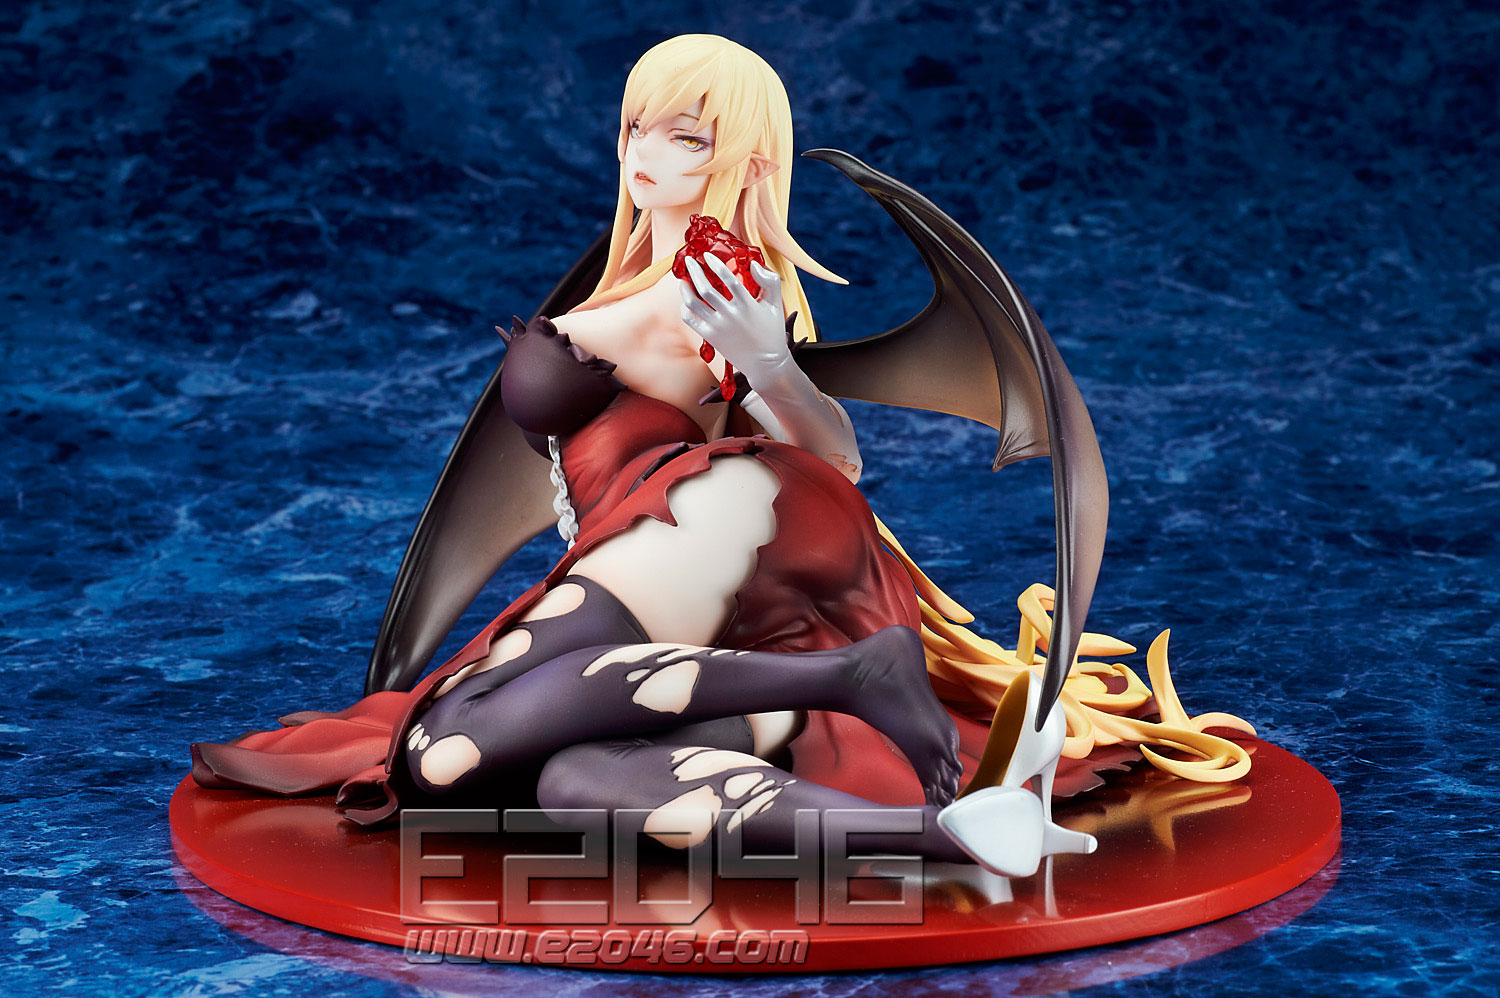 Kiss-Shot Acerola-Orion Heart-Under-Blade